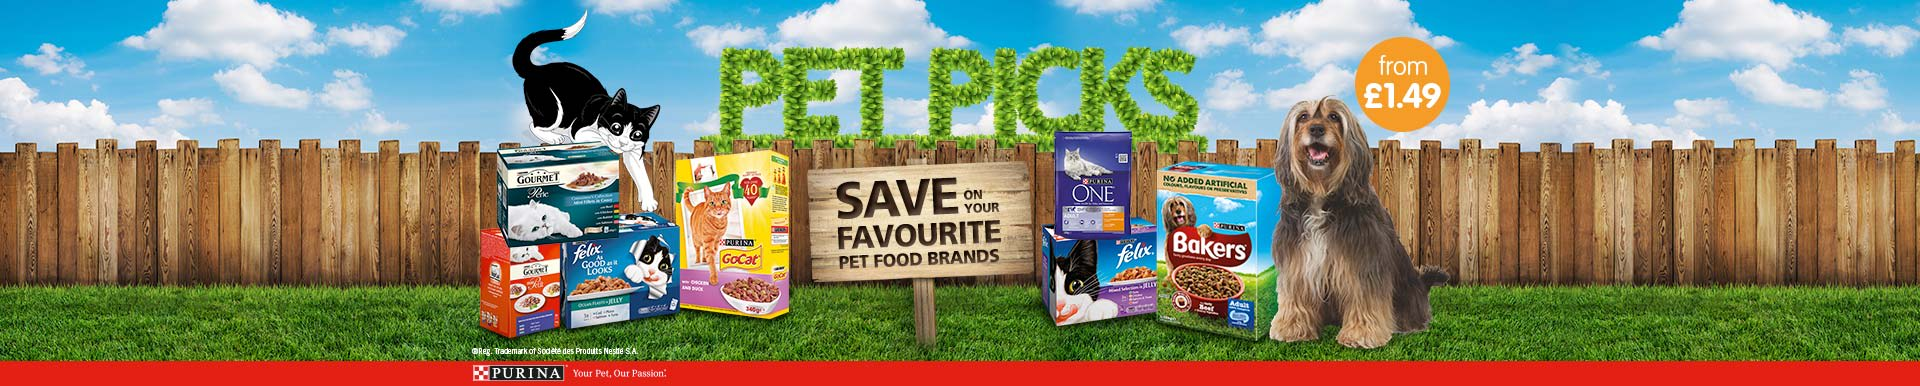 Save on Purina Pet Food at B&M.